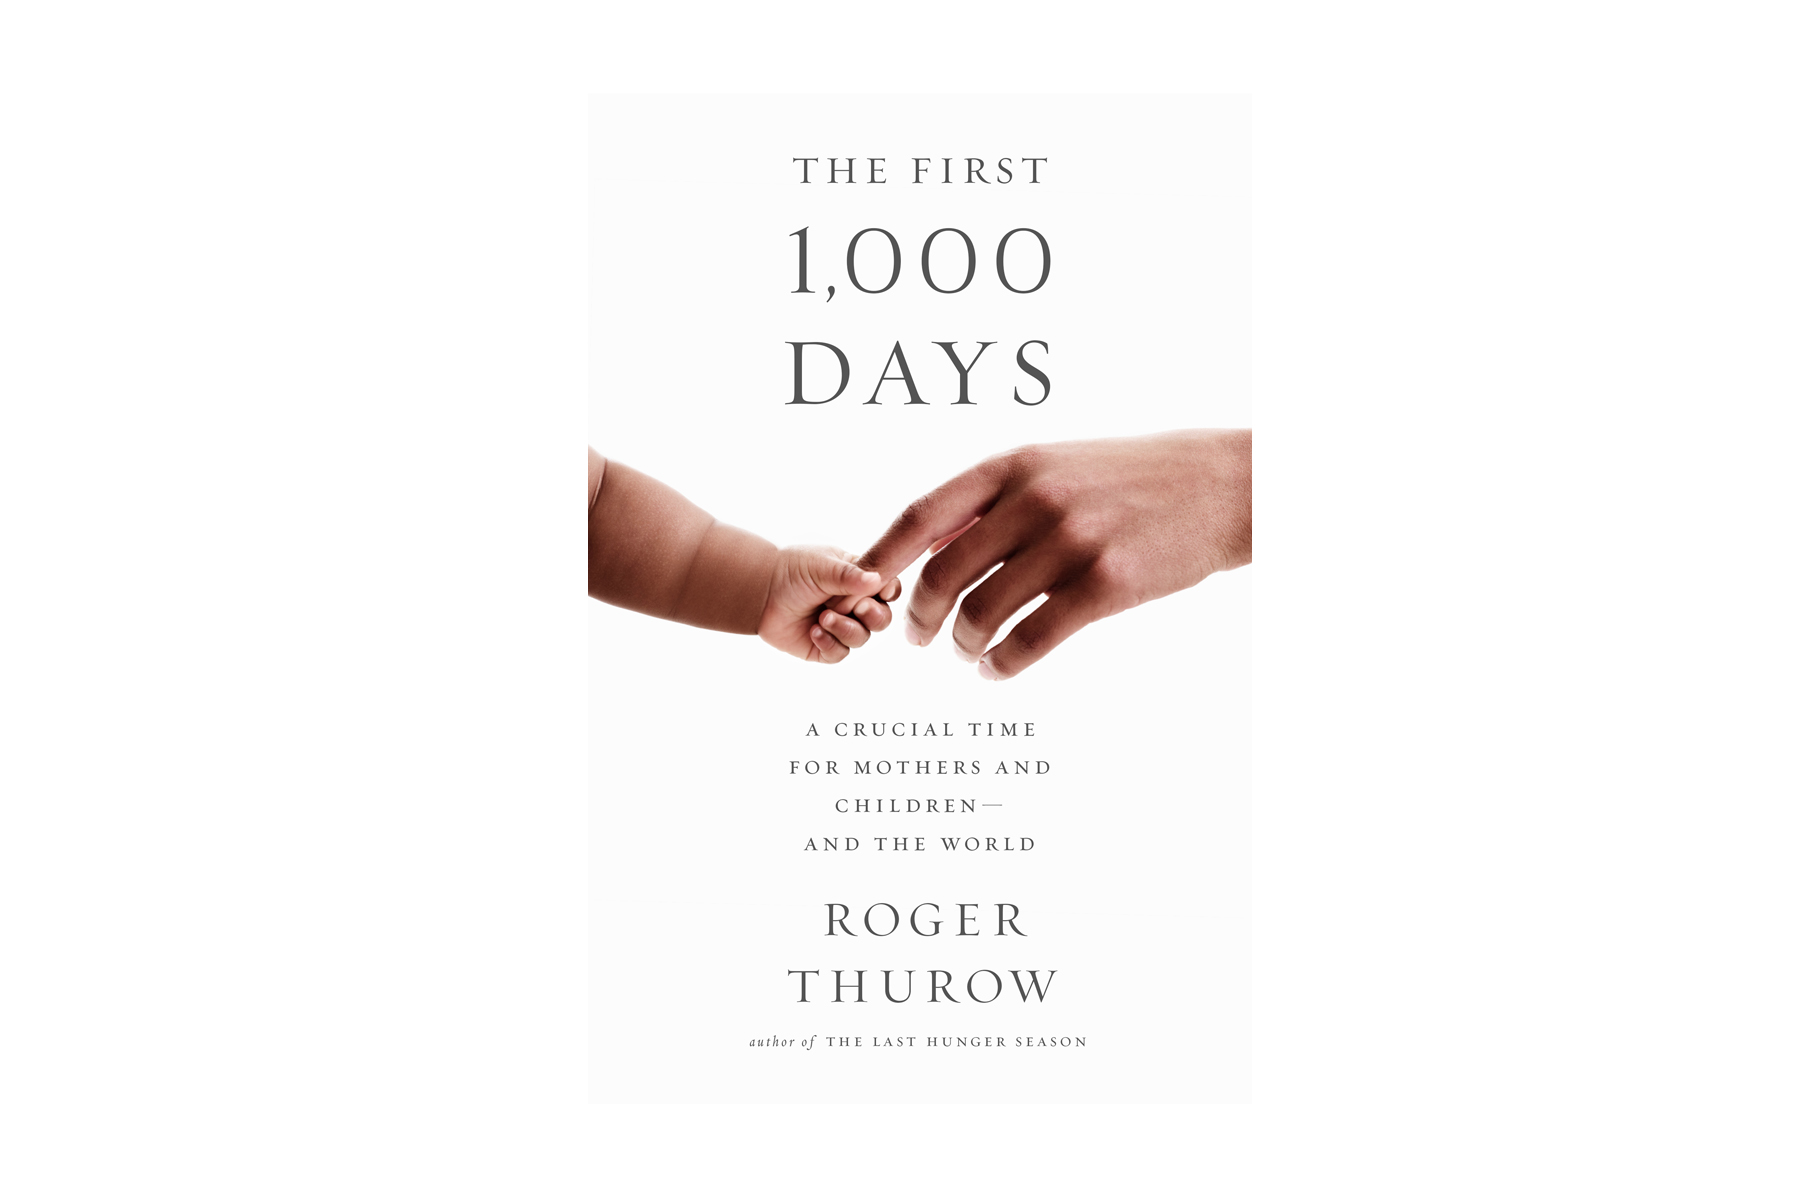 Kids Who Suffer Hunger In First Years >> The First 1000 Days Every Mother Counts